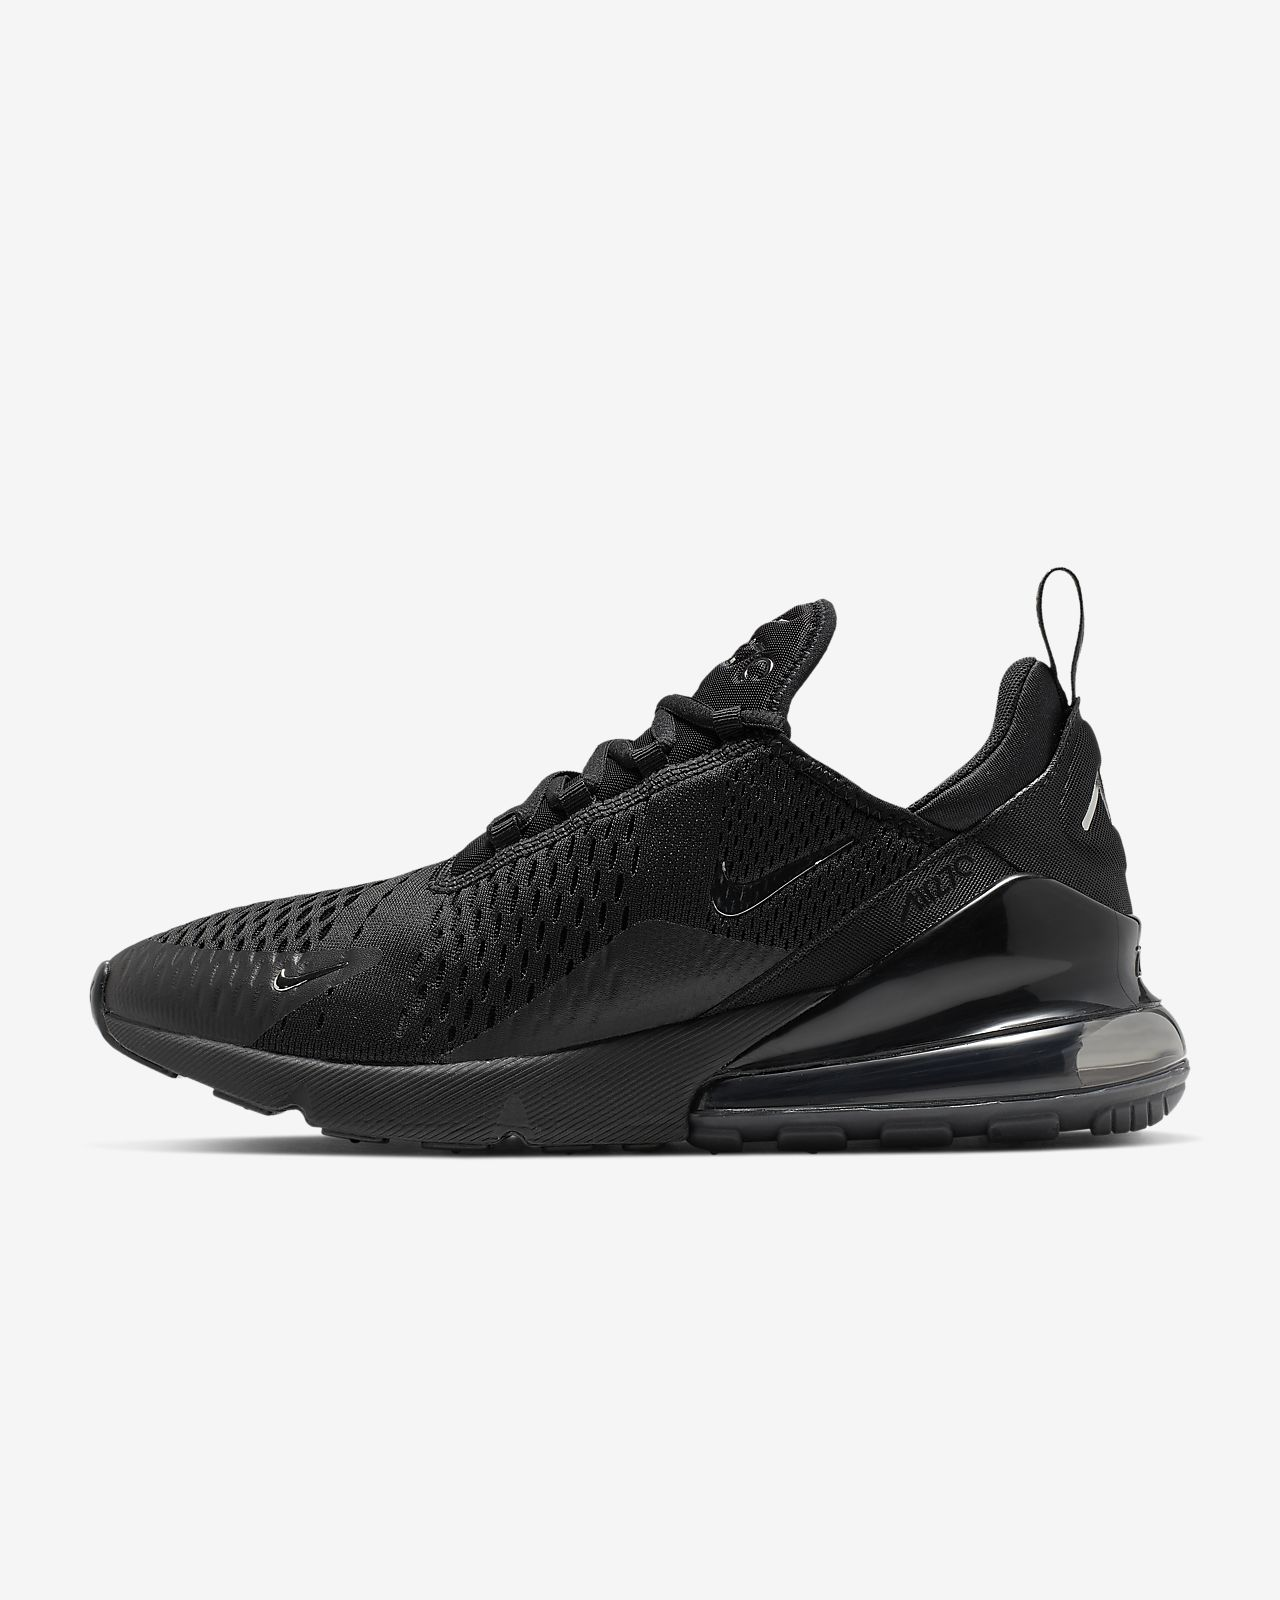 Chaussure Nike Air Max 270 pour Homme